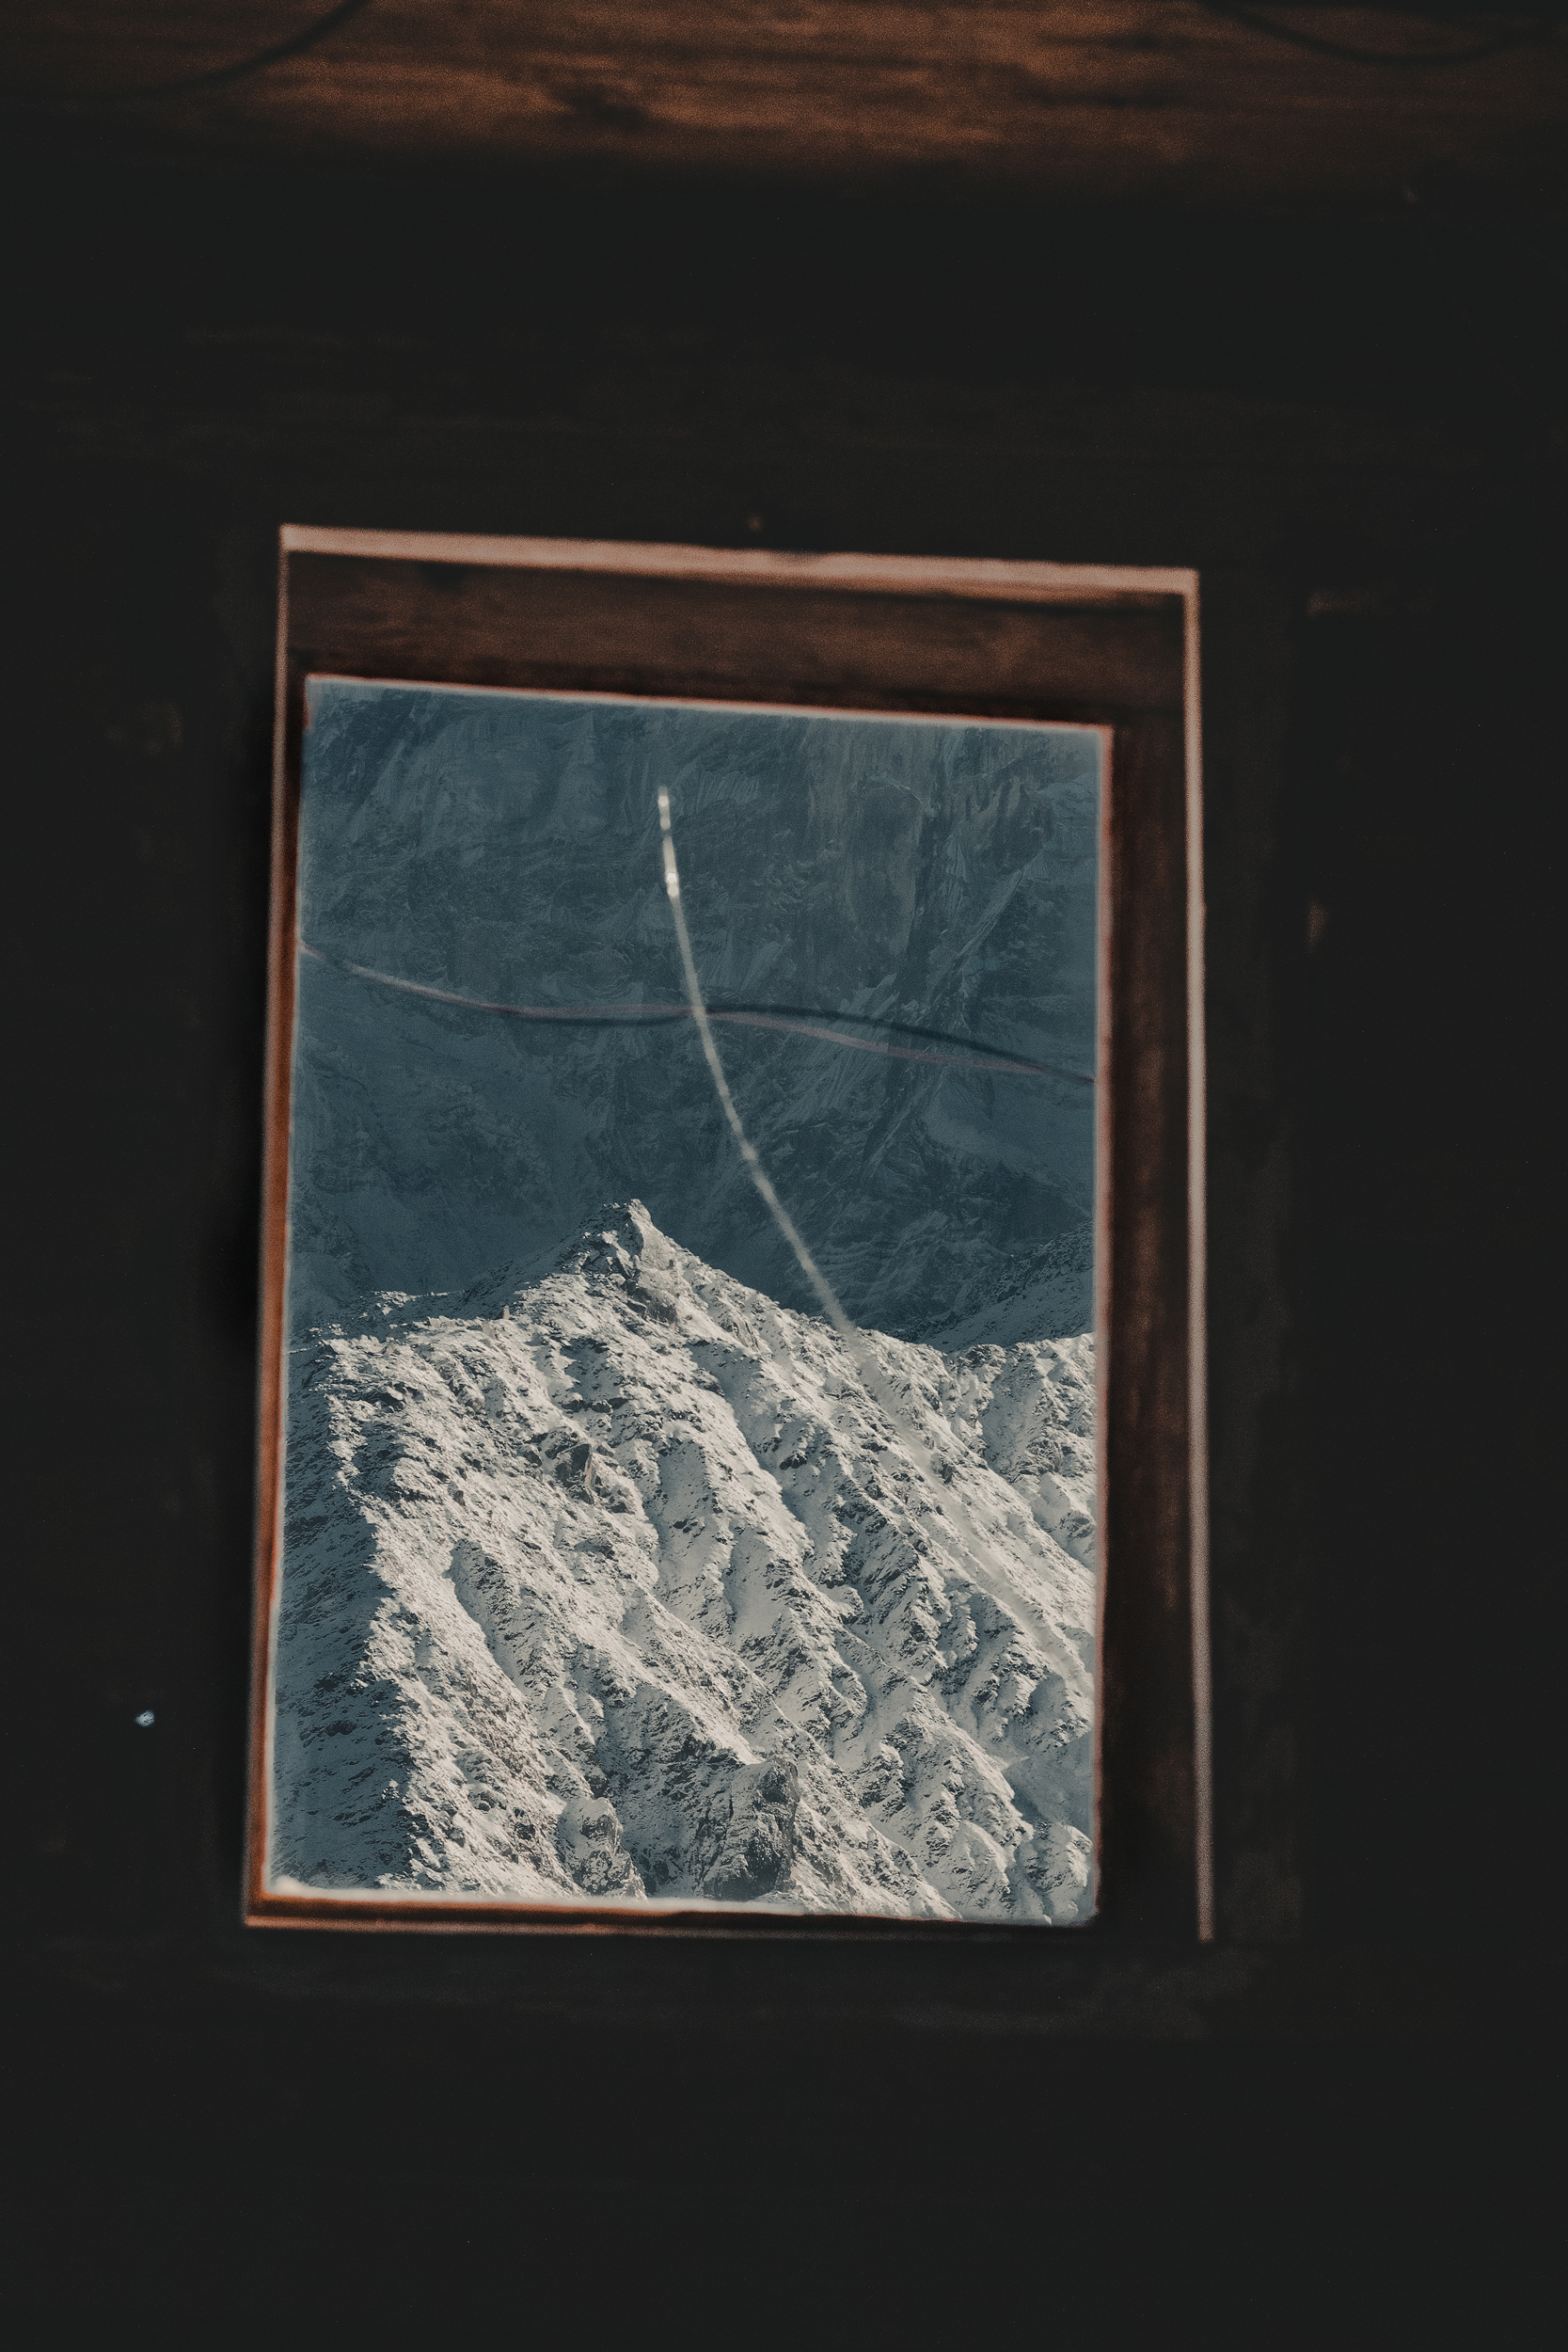 khopra-ridge-annapurna-window.jpg